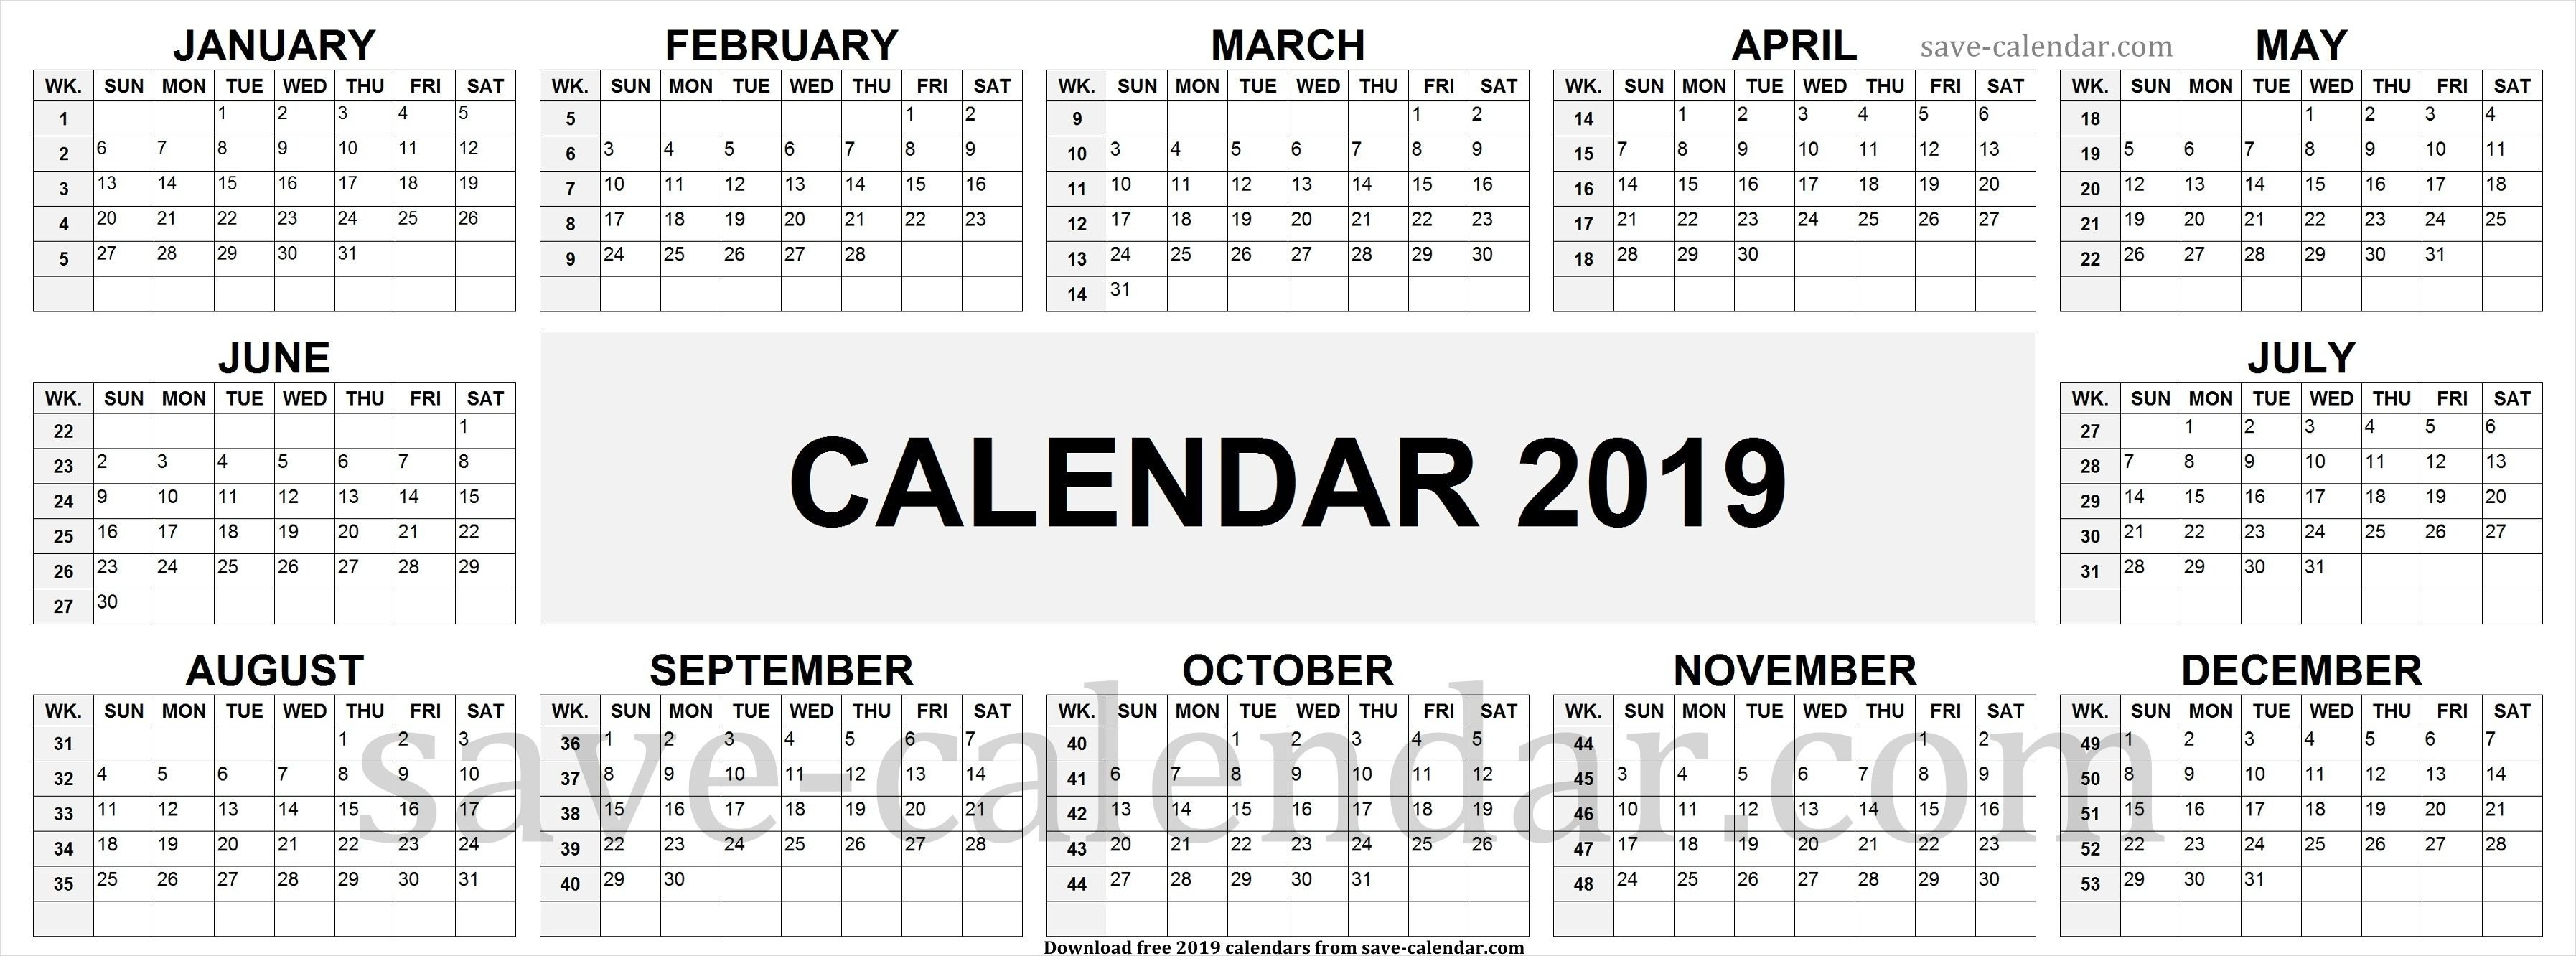 2019 Calendarweek Numbers | Calendar 2019 With Week Numbers Calendar 2019 With Week Numbers